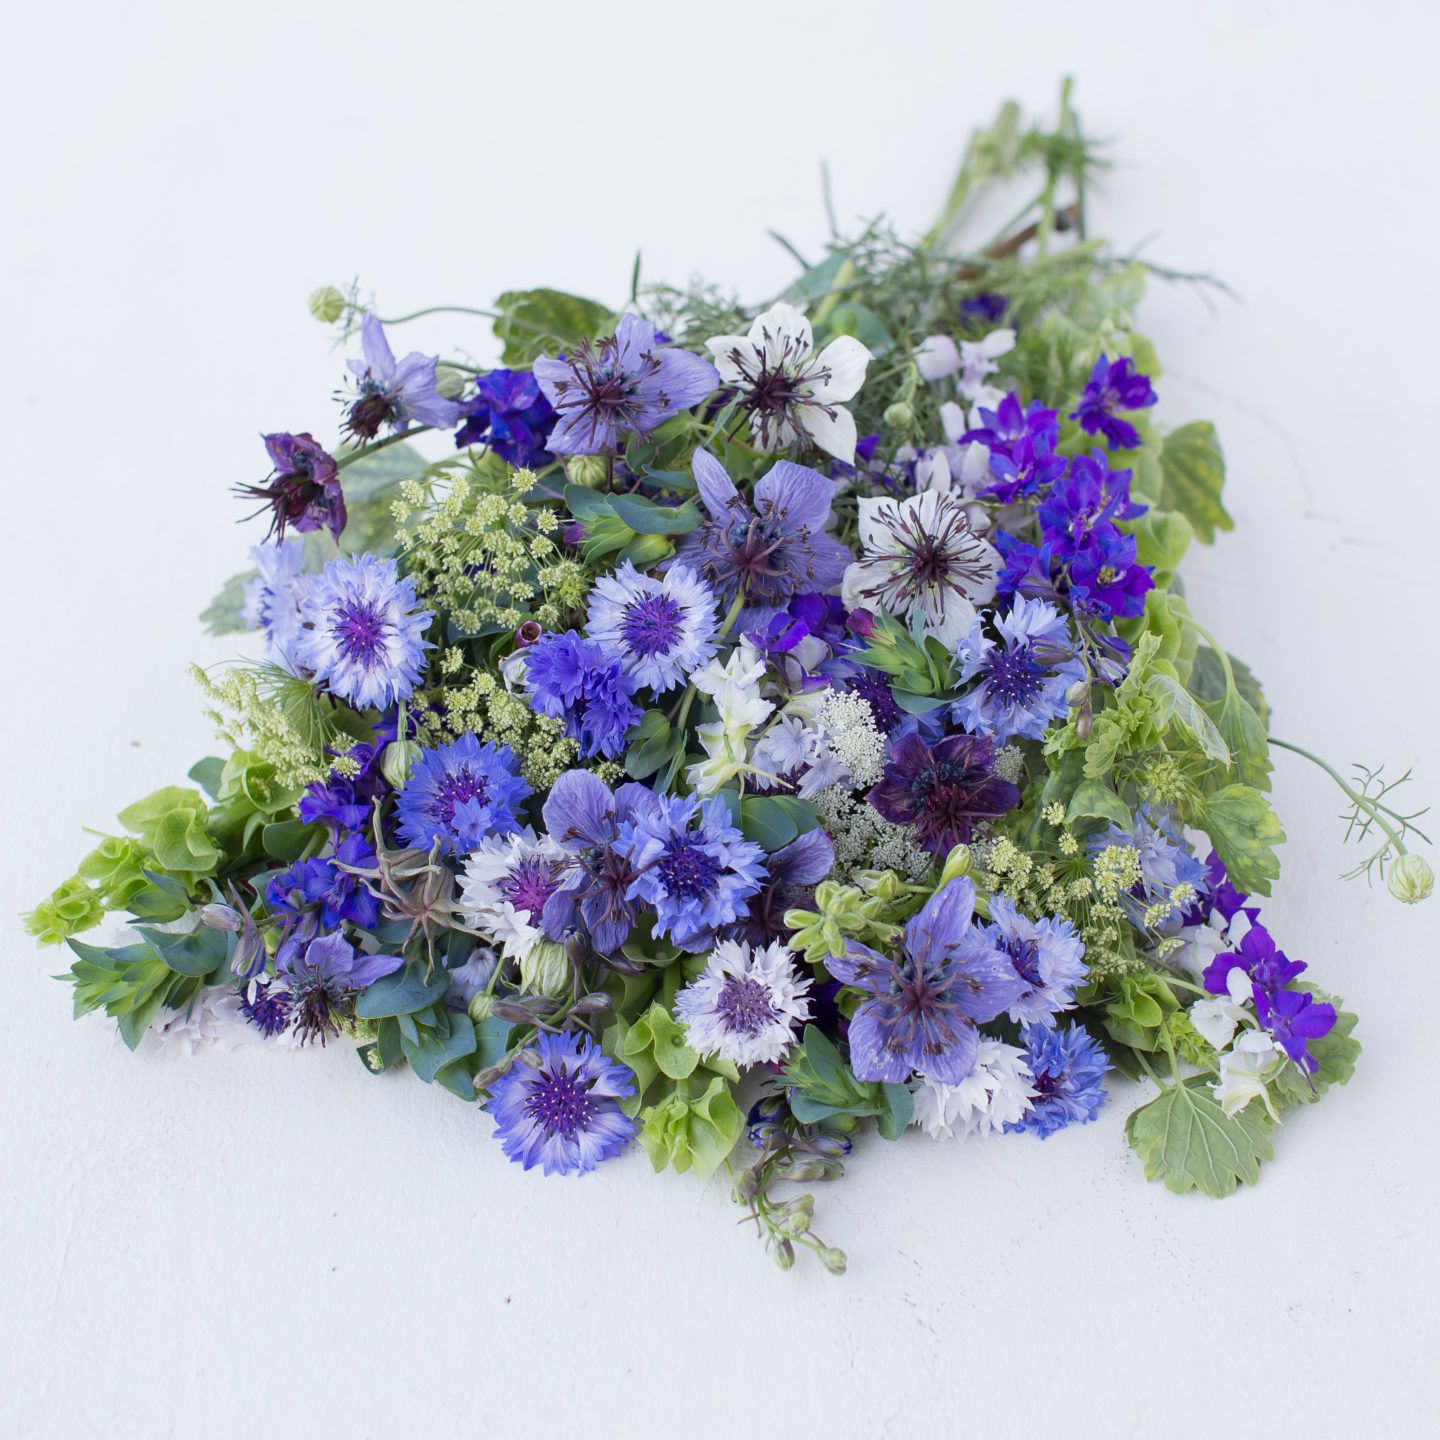 Welcome spring with these hardy annual flowers flowers seeds and welcome spring with these hardy annual flowers izmirmasajfo